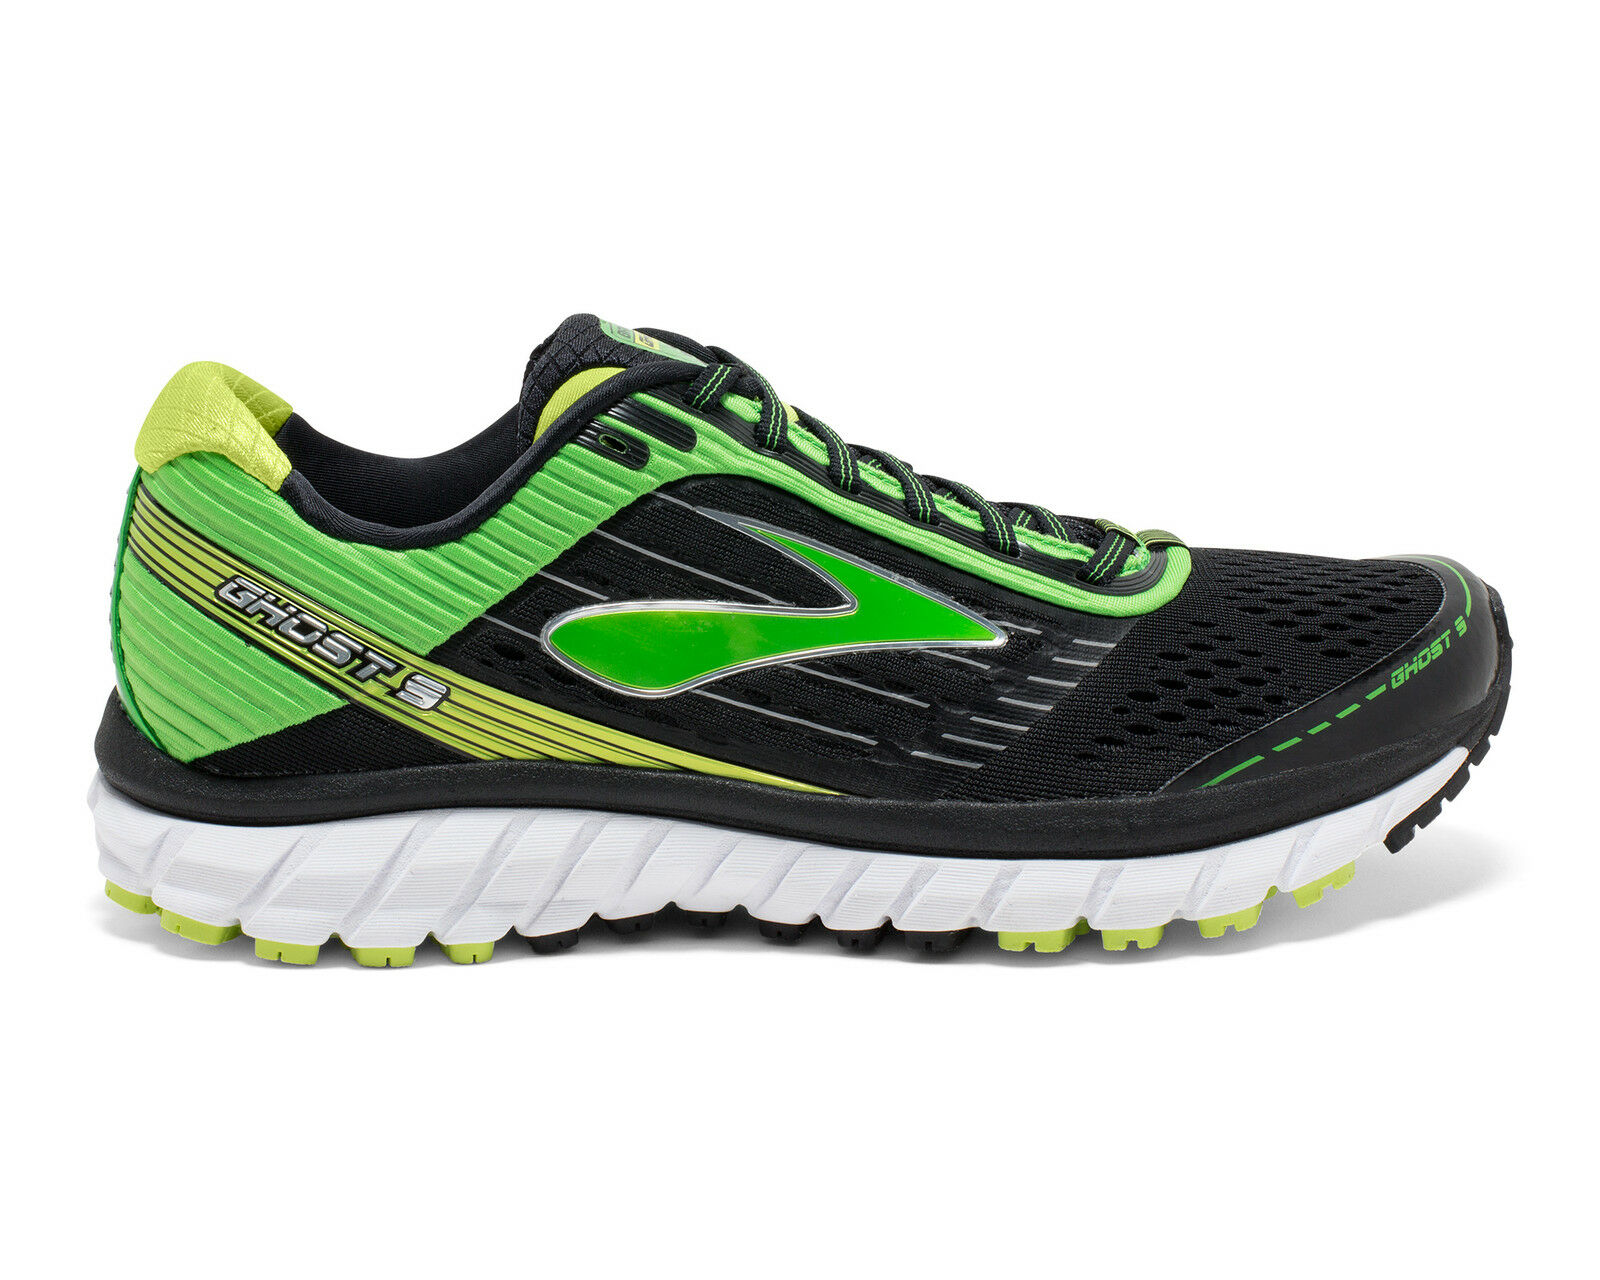 buy popular 20ce7 24d61 BROOKS GHOST GHOST GHOST 9 MENS RUNNING SHOE (D) (071) 201cad